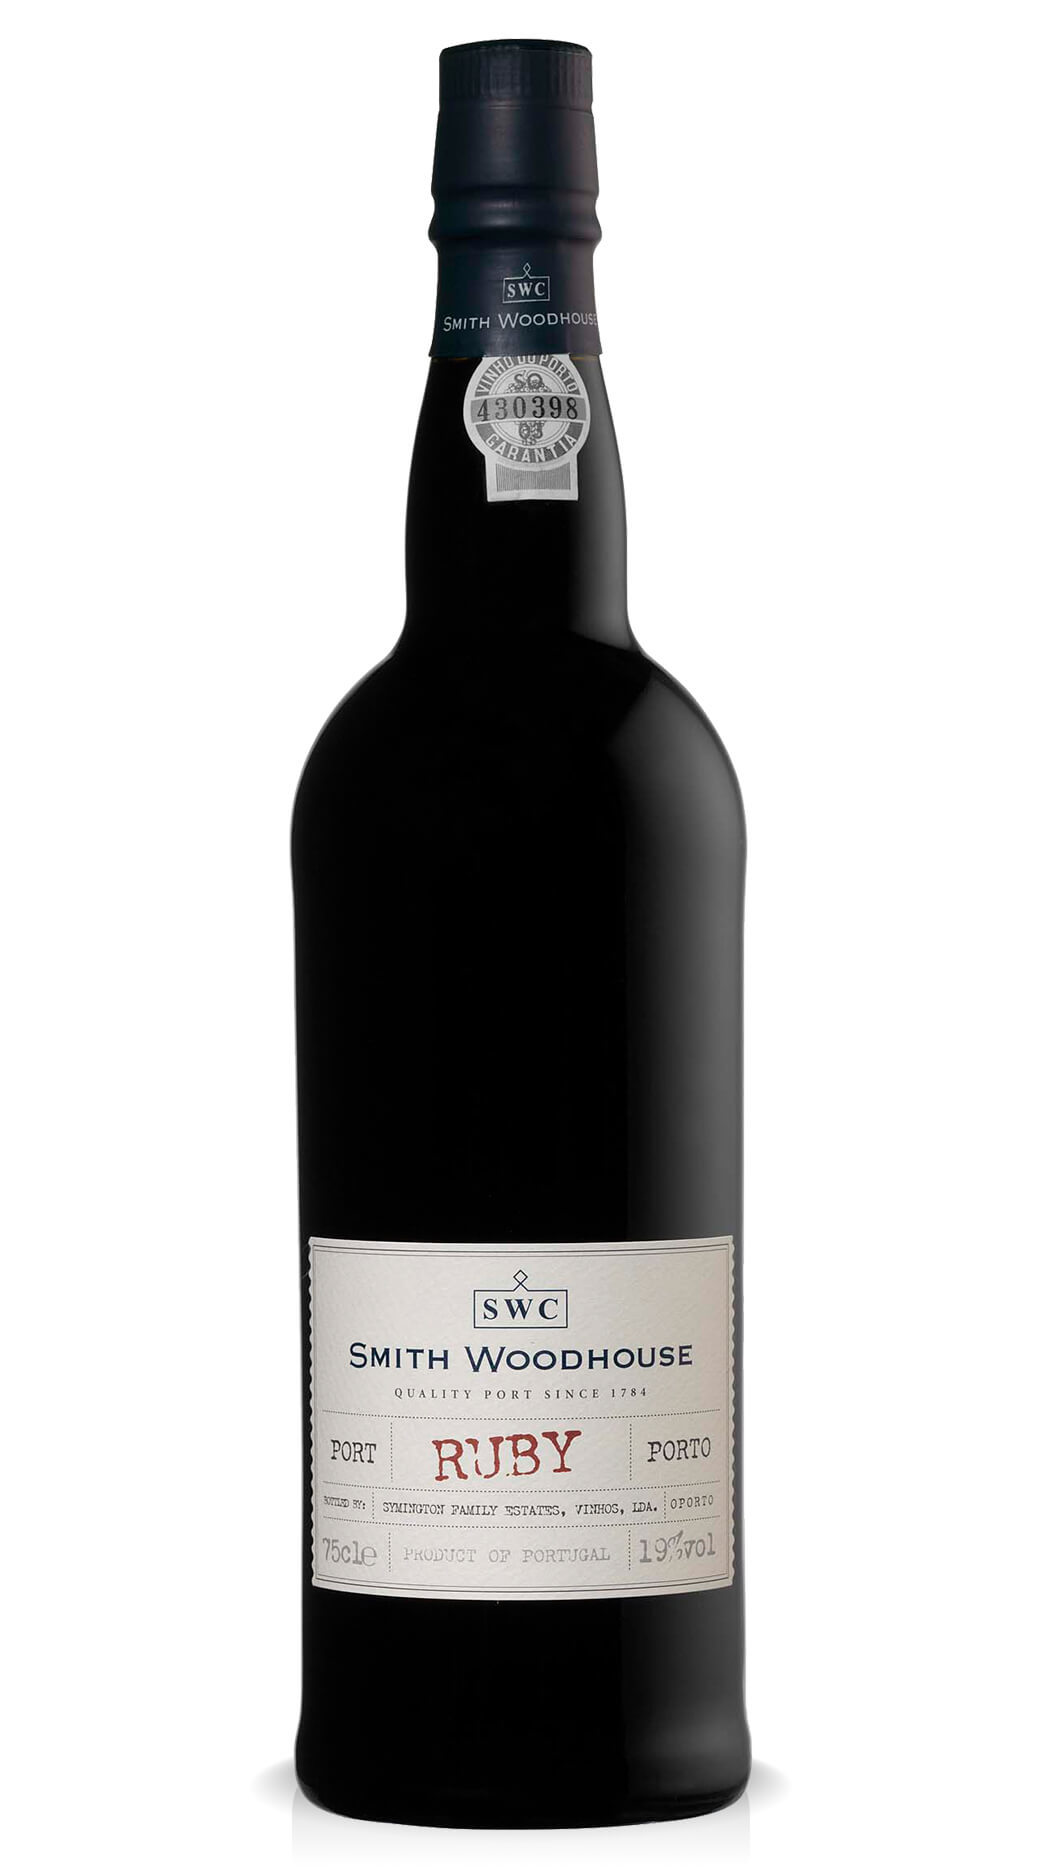 Smith Woodhouse Ruby Port 00108